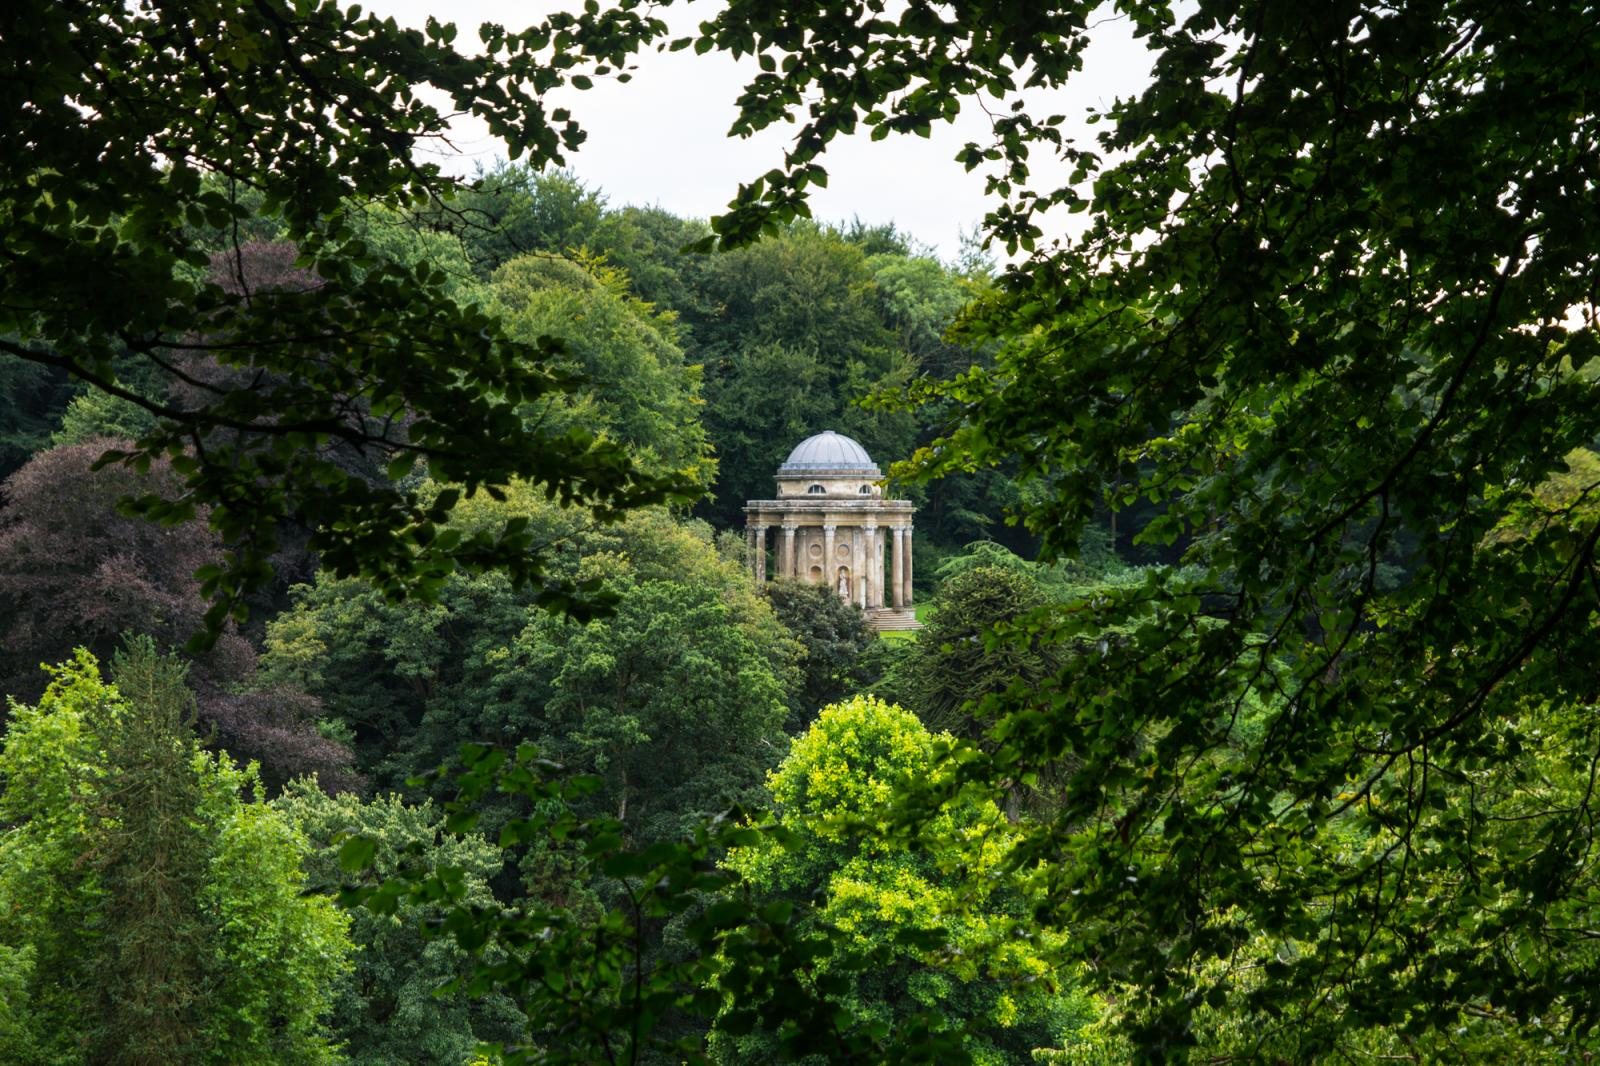 Chapel in Green Idyll, Stourhead